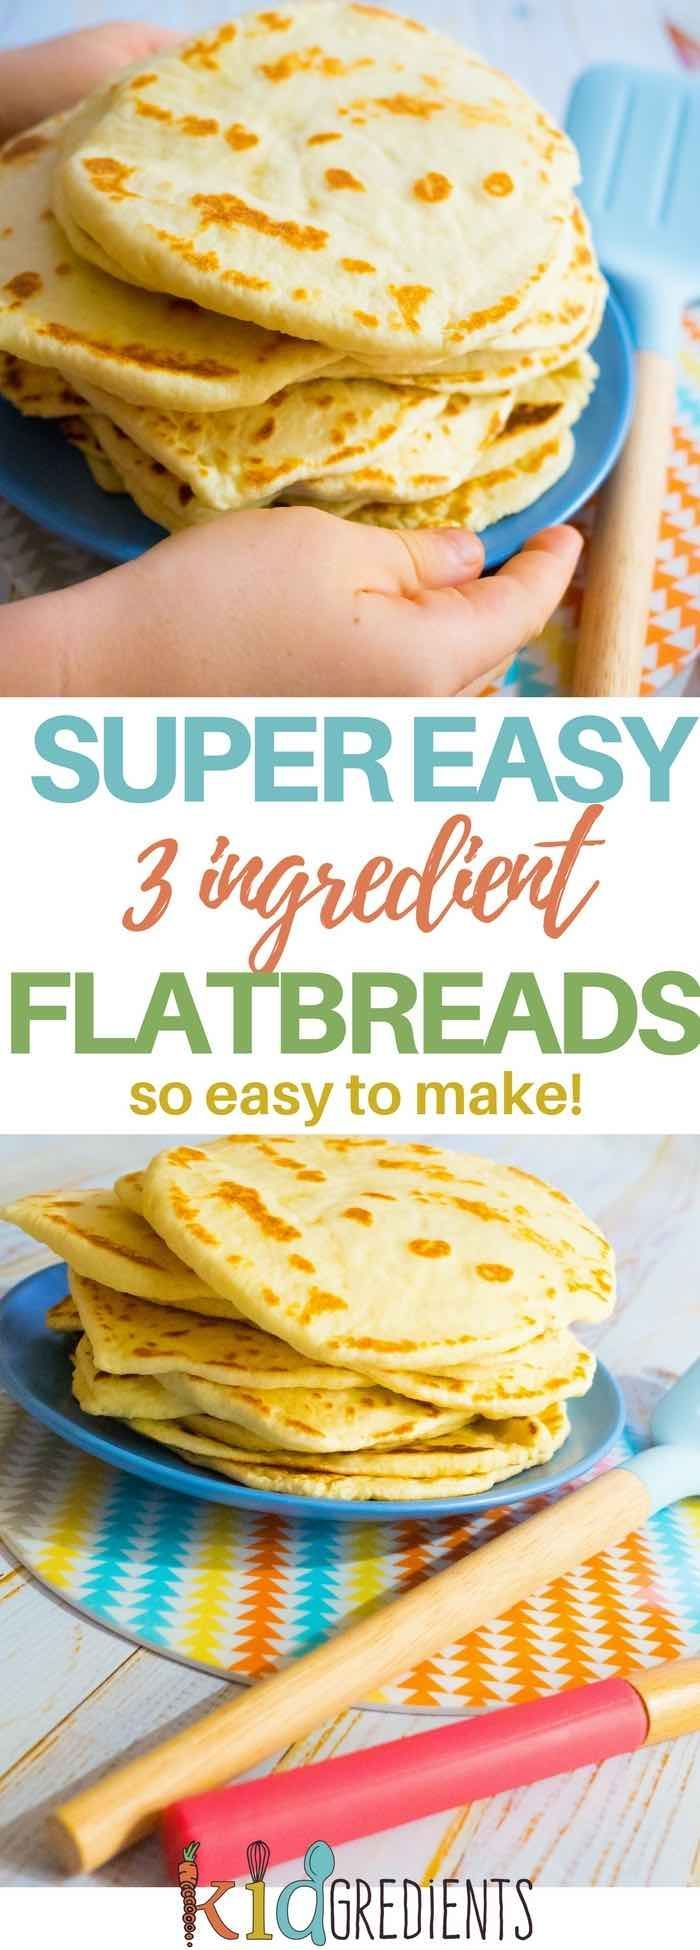 3 ingredient flatbreads, so easy to make, freezer friendly and kid friendly! No rising, no waiting, no baking just quick and simple! #kidgredients #kidsfood #bread #flatbreads #easy  via @kidgredients